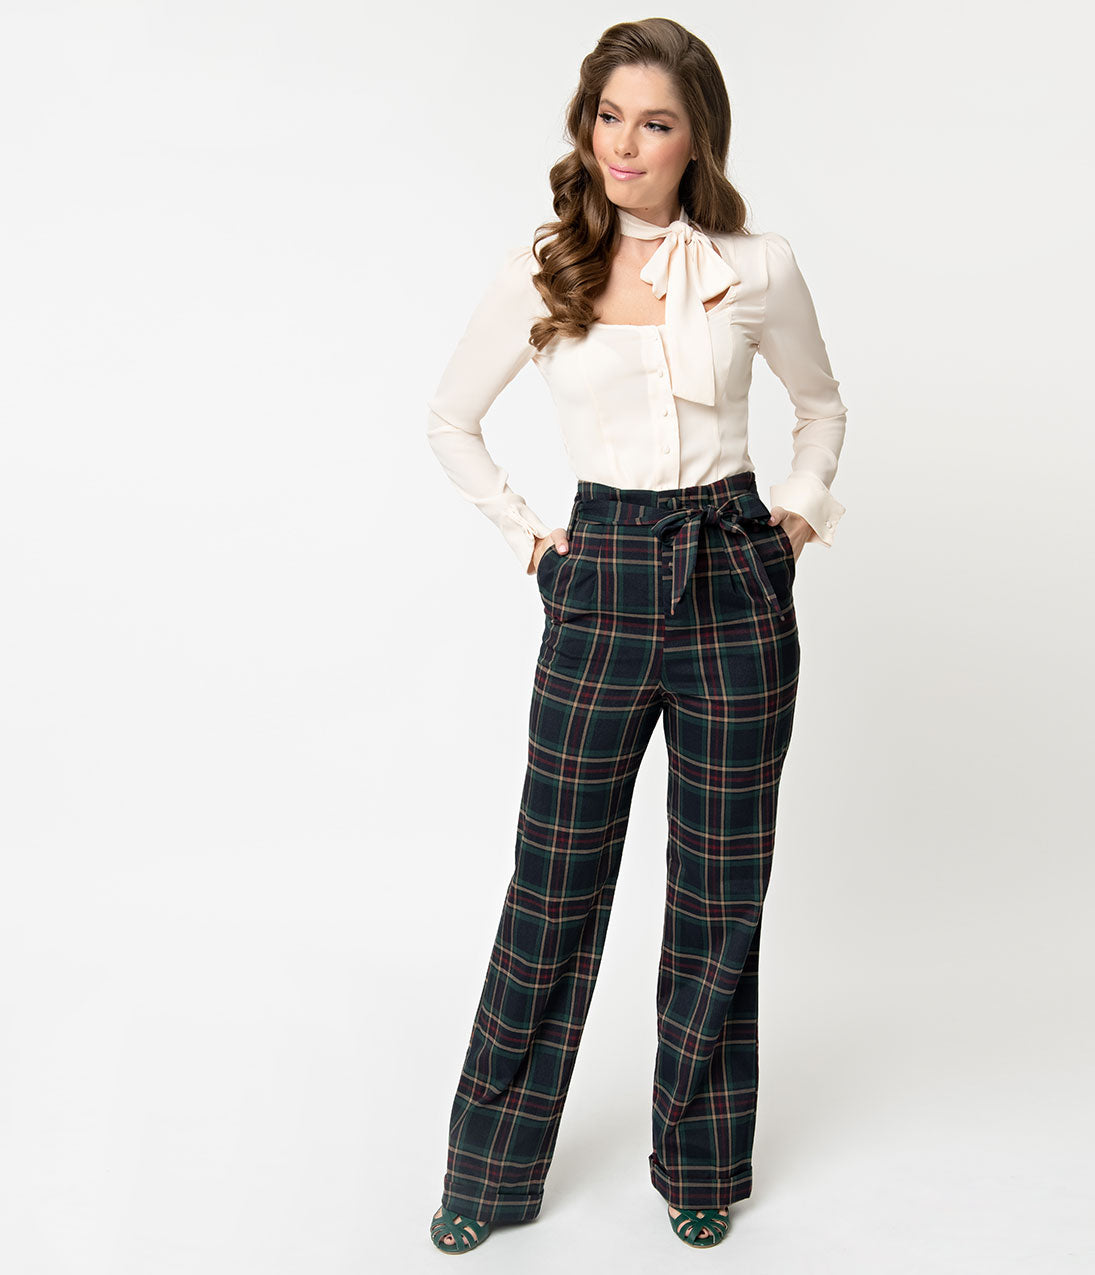 1940s Swing Pants & Sailor Trousers- Wide Leg, High Waist Unique Vintage 1940S Style Navy  Emerald Plaid Paper Bag High Waisted Myrna Pants $88.00 AT vintagedancer.com